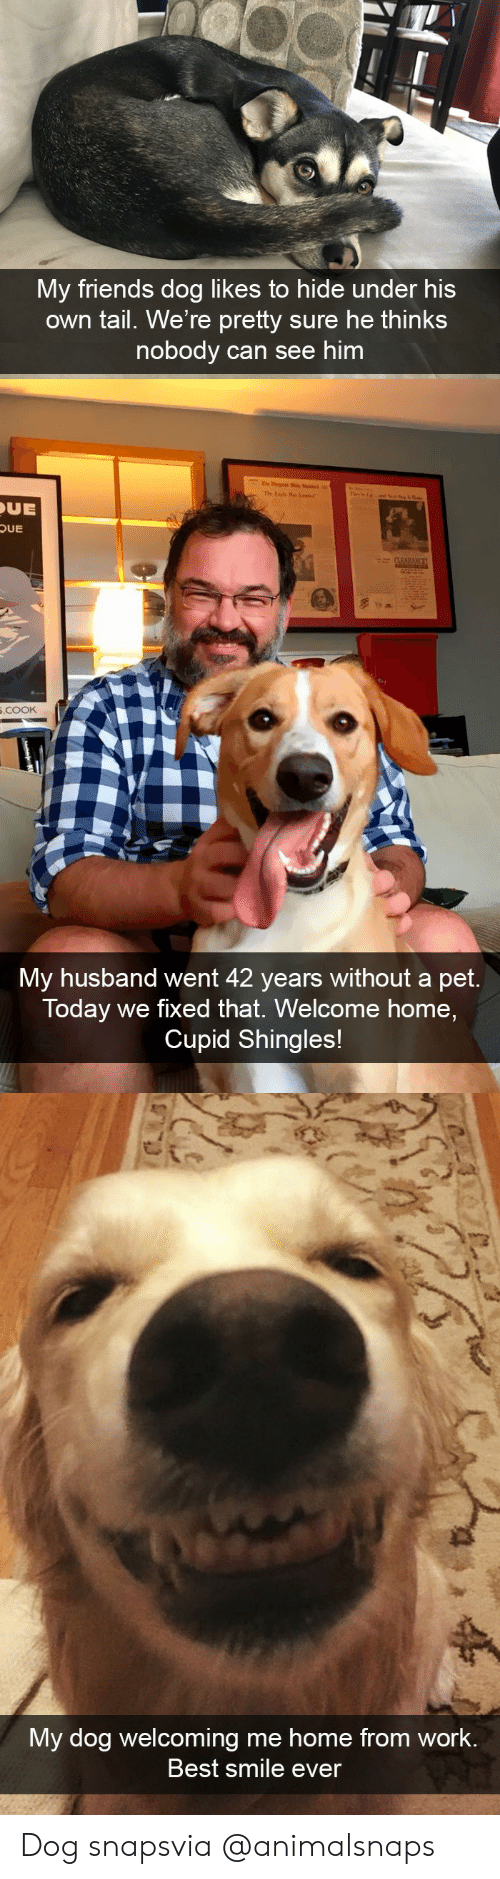 Cupid: My friends dog likes to hide under his  own tail. We're pretty sure he thinks  nobody can see him   UE  OUE  .cooK  My husband went 42 years without a pet.  Today we fixed that. Welcome home,  Cupid Shingles!   My dog welcoming me home from work  Best smile ever Dog snapsvia @animalsnaps